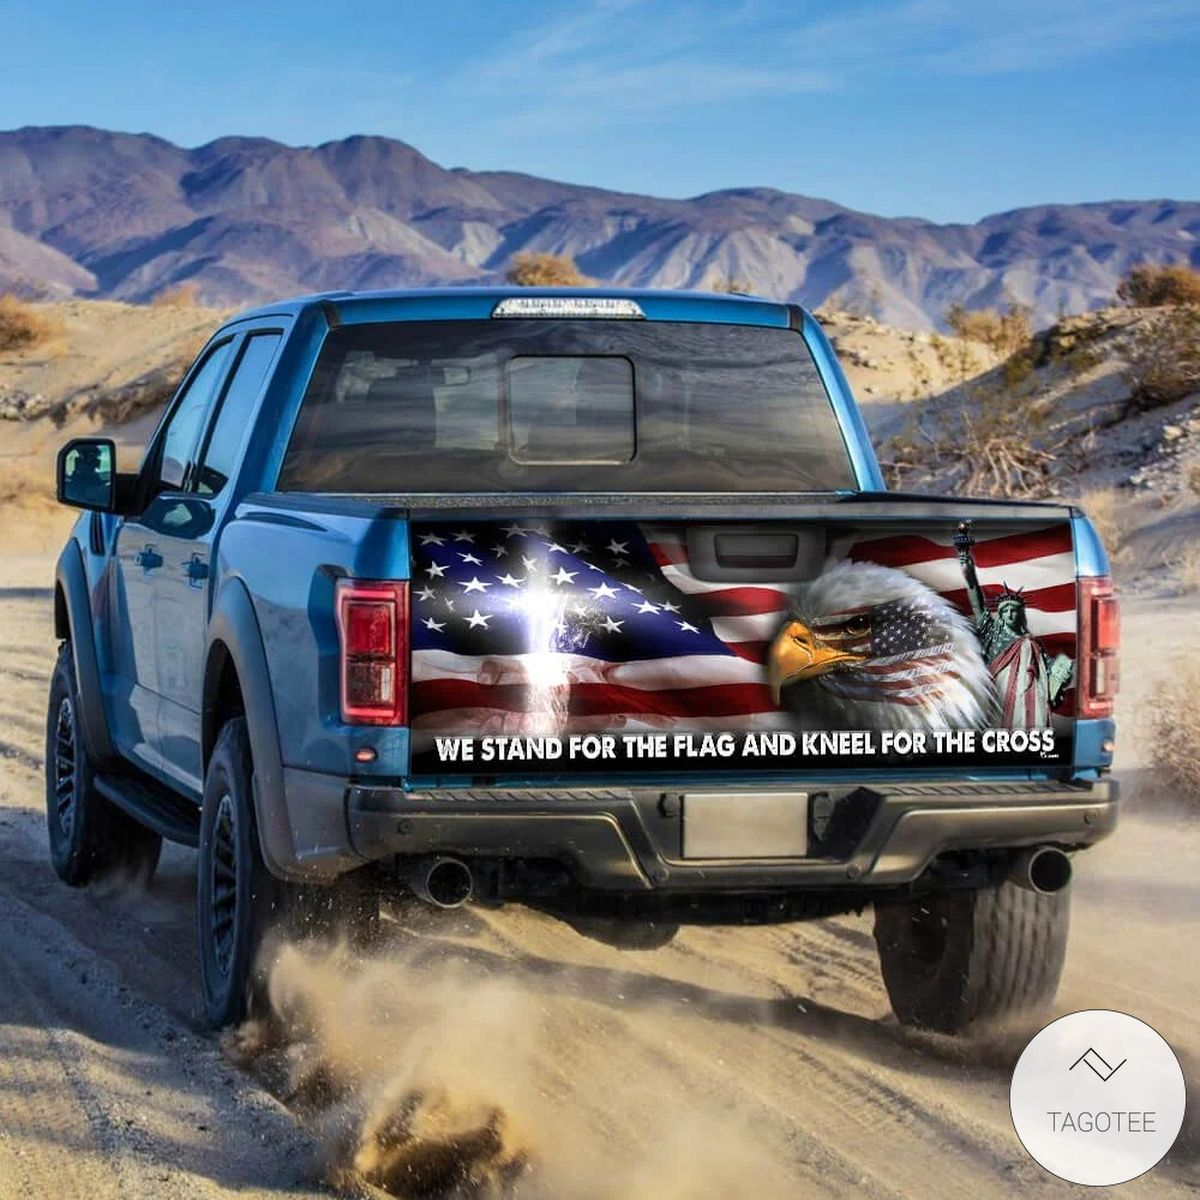 Jesus We Stand For The Flag And Kneel For The Cross Tailgate Wrapz